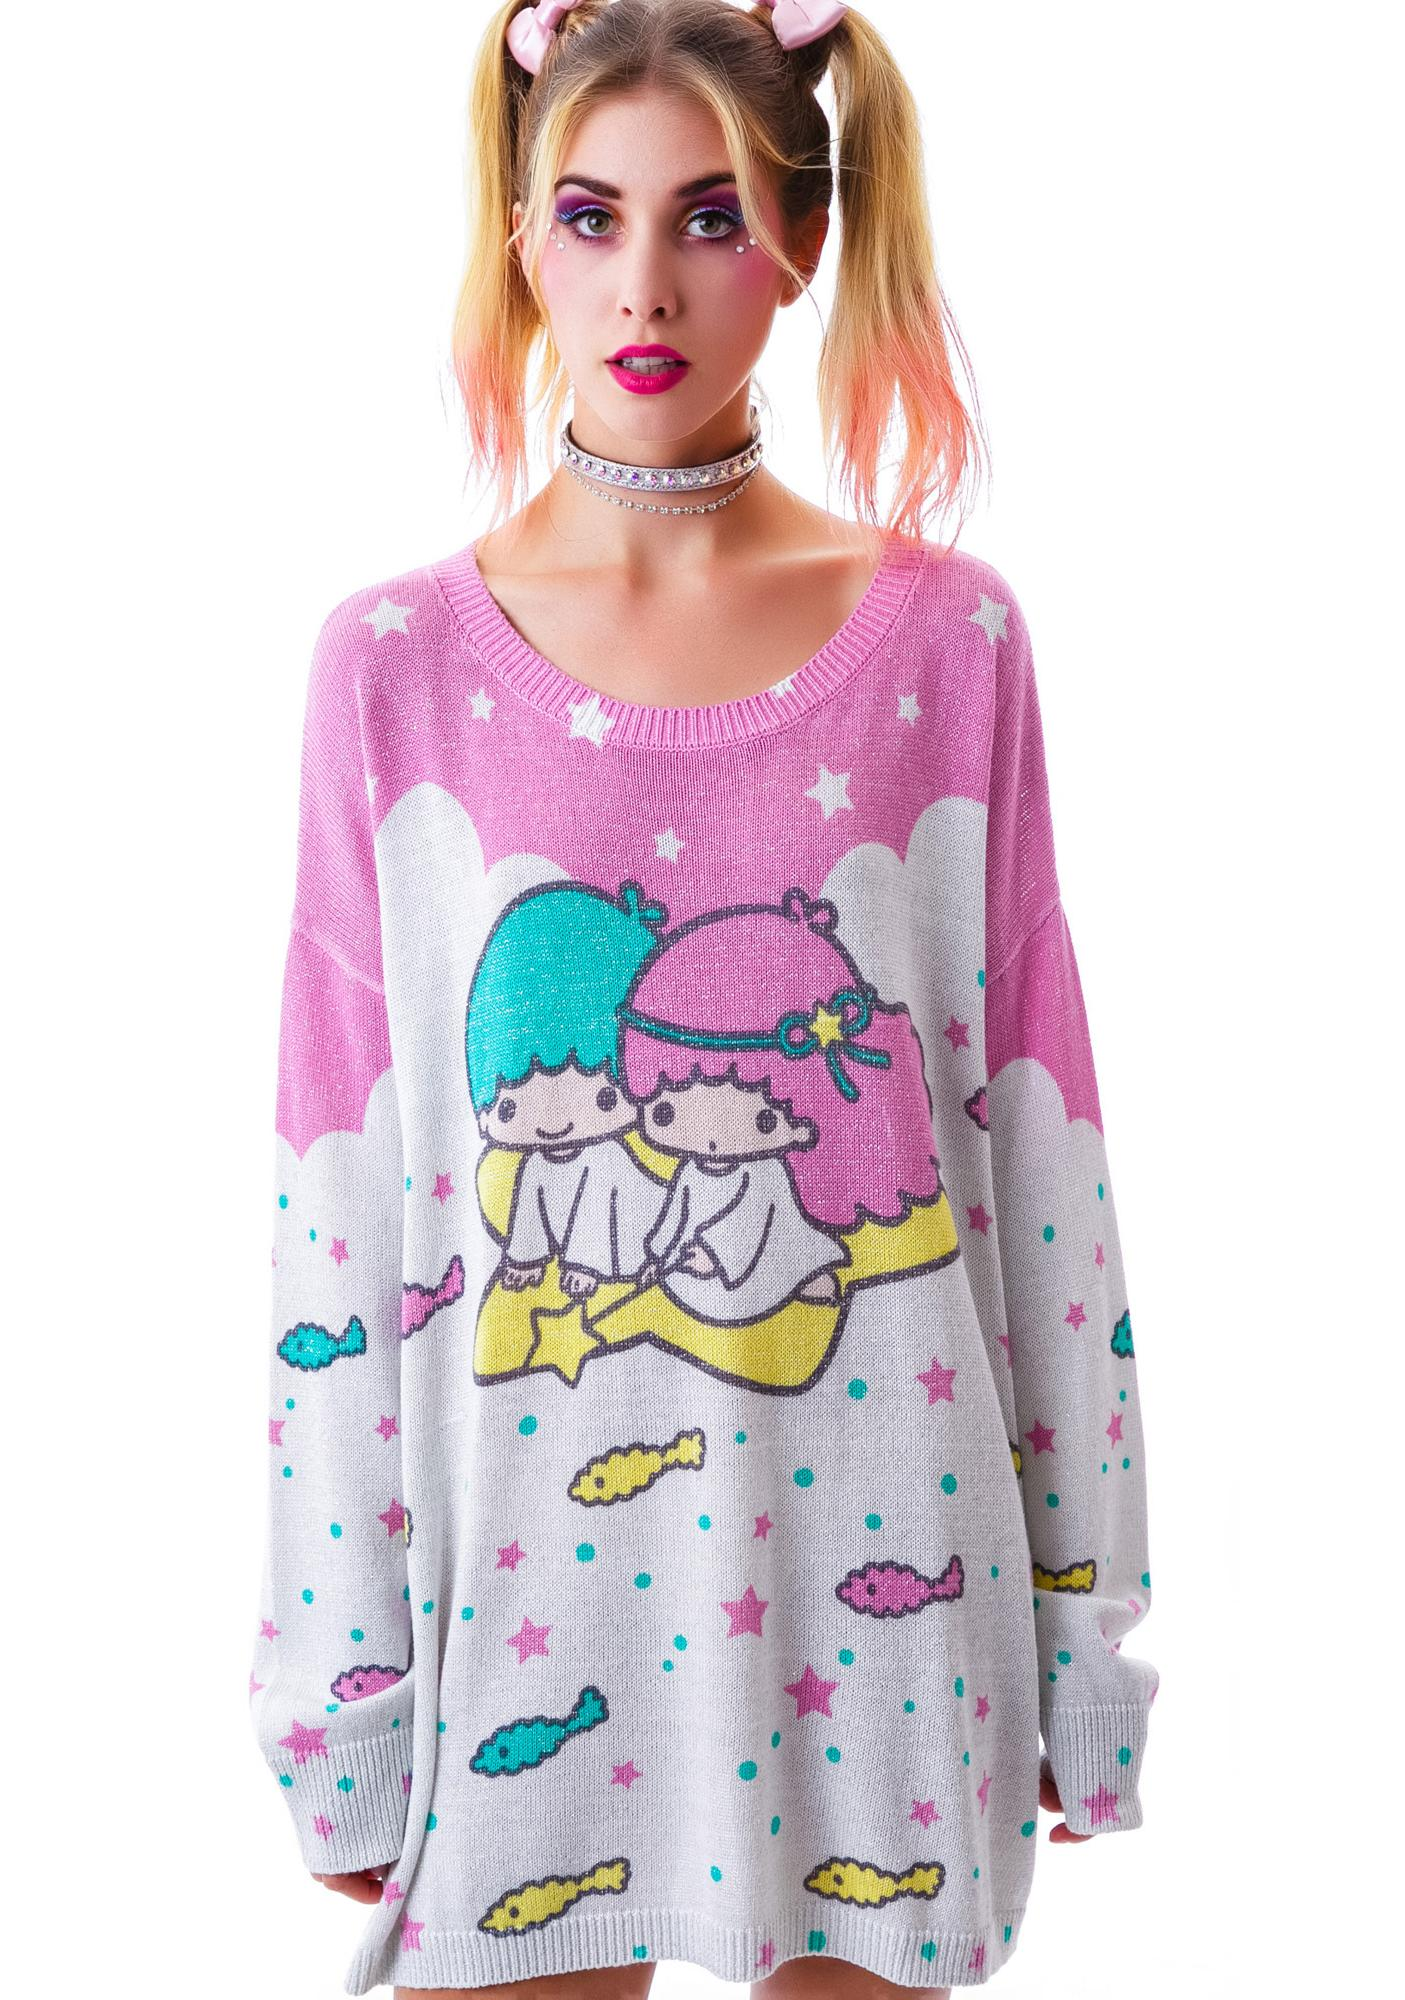 Japan L.A. Little Twin Stars Knit Sweater